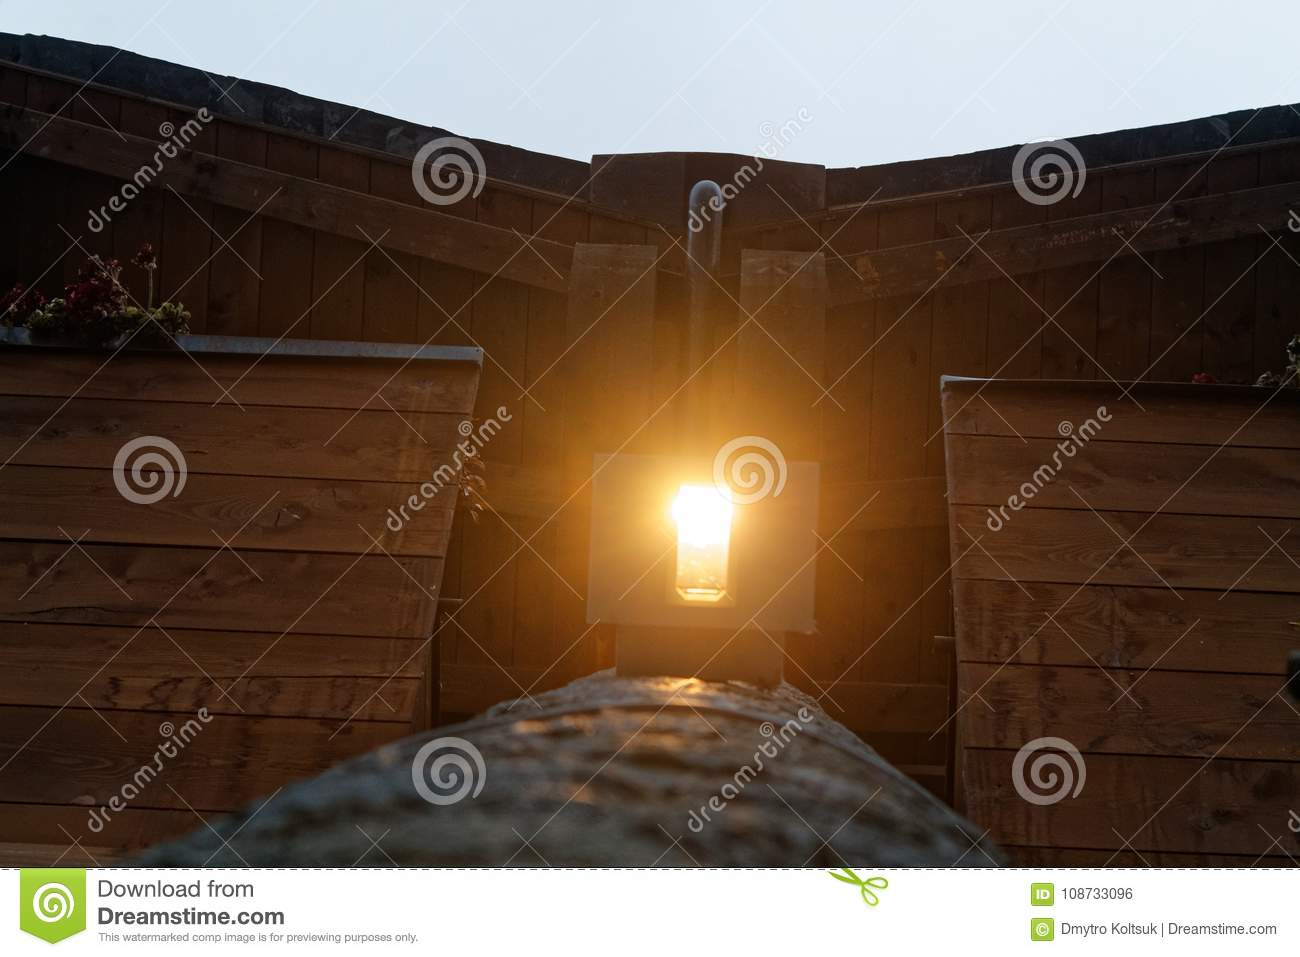 Light Lamp Under The Wooden Roof With Dark Wooden Beams